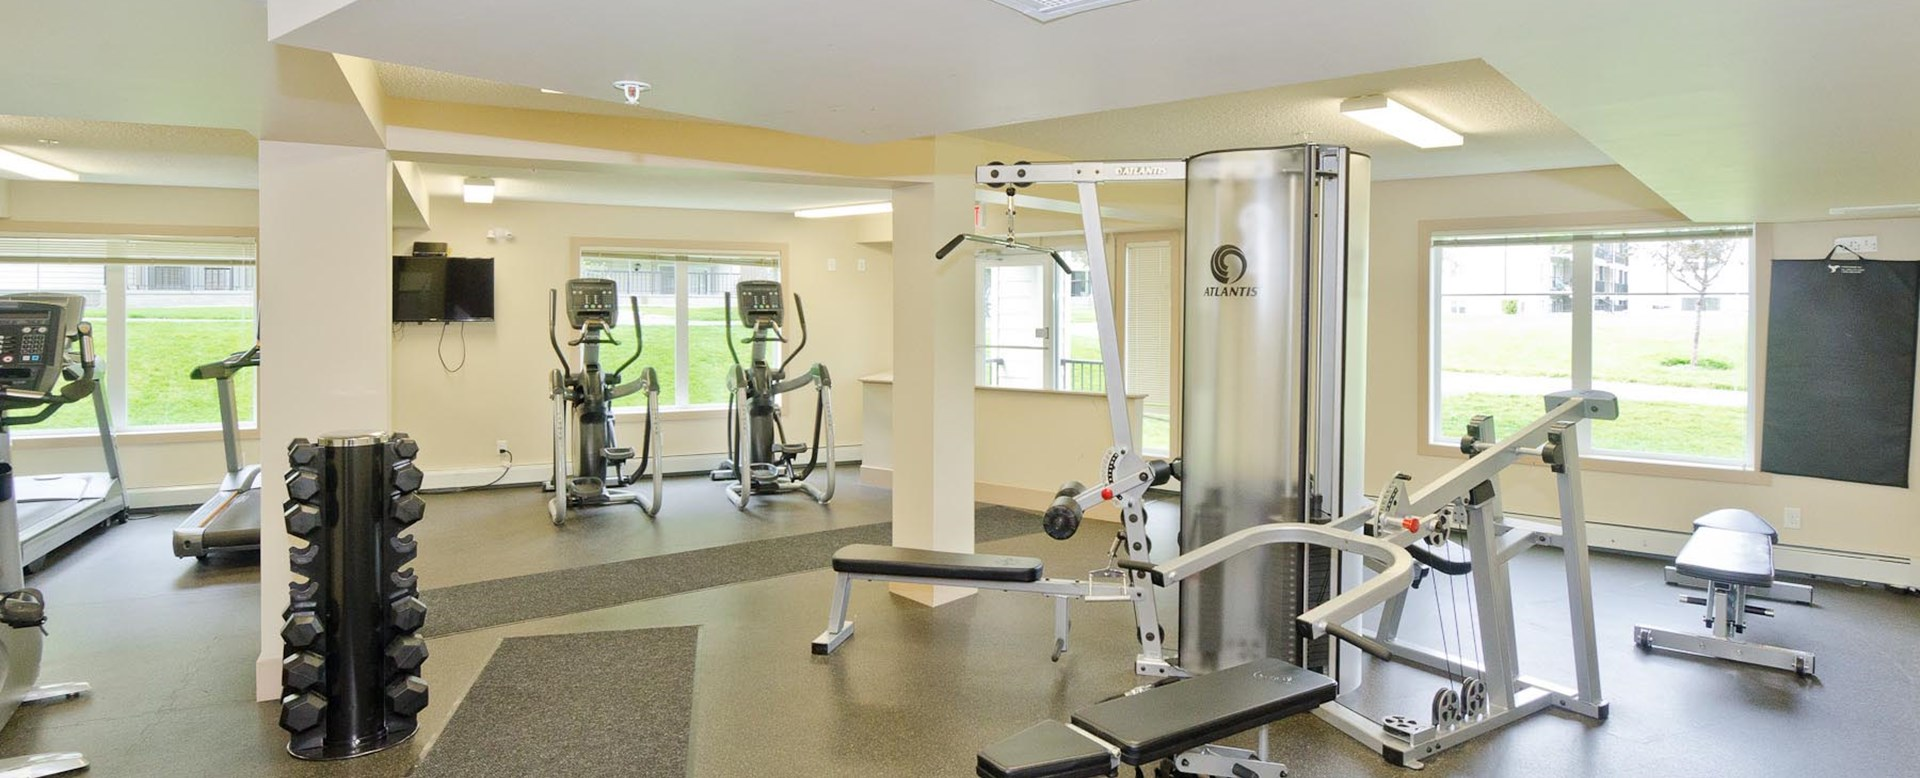 Fitness Centre at Spruce Ridge Gardens in Calgary